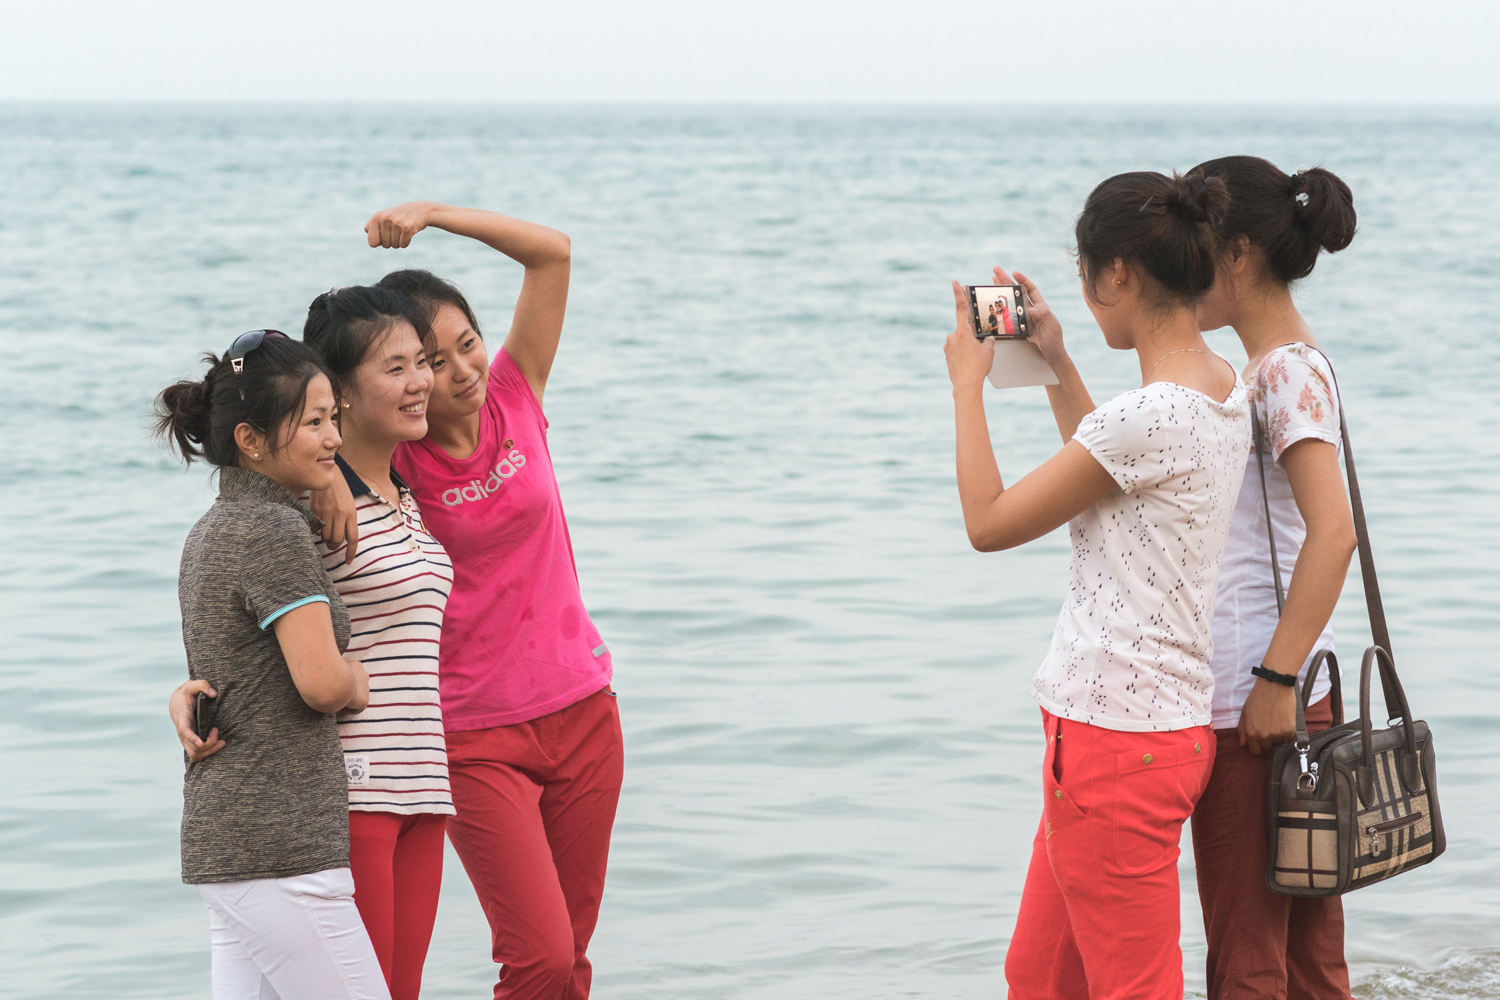 Some of our new students taking photos on the beach.